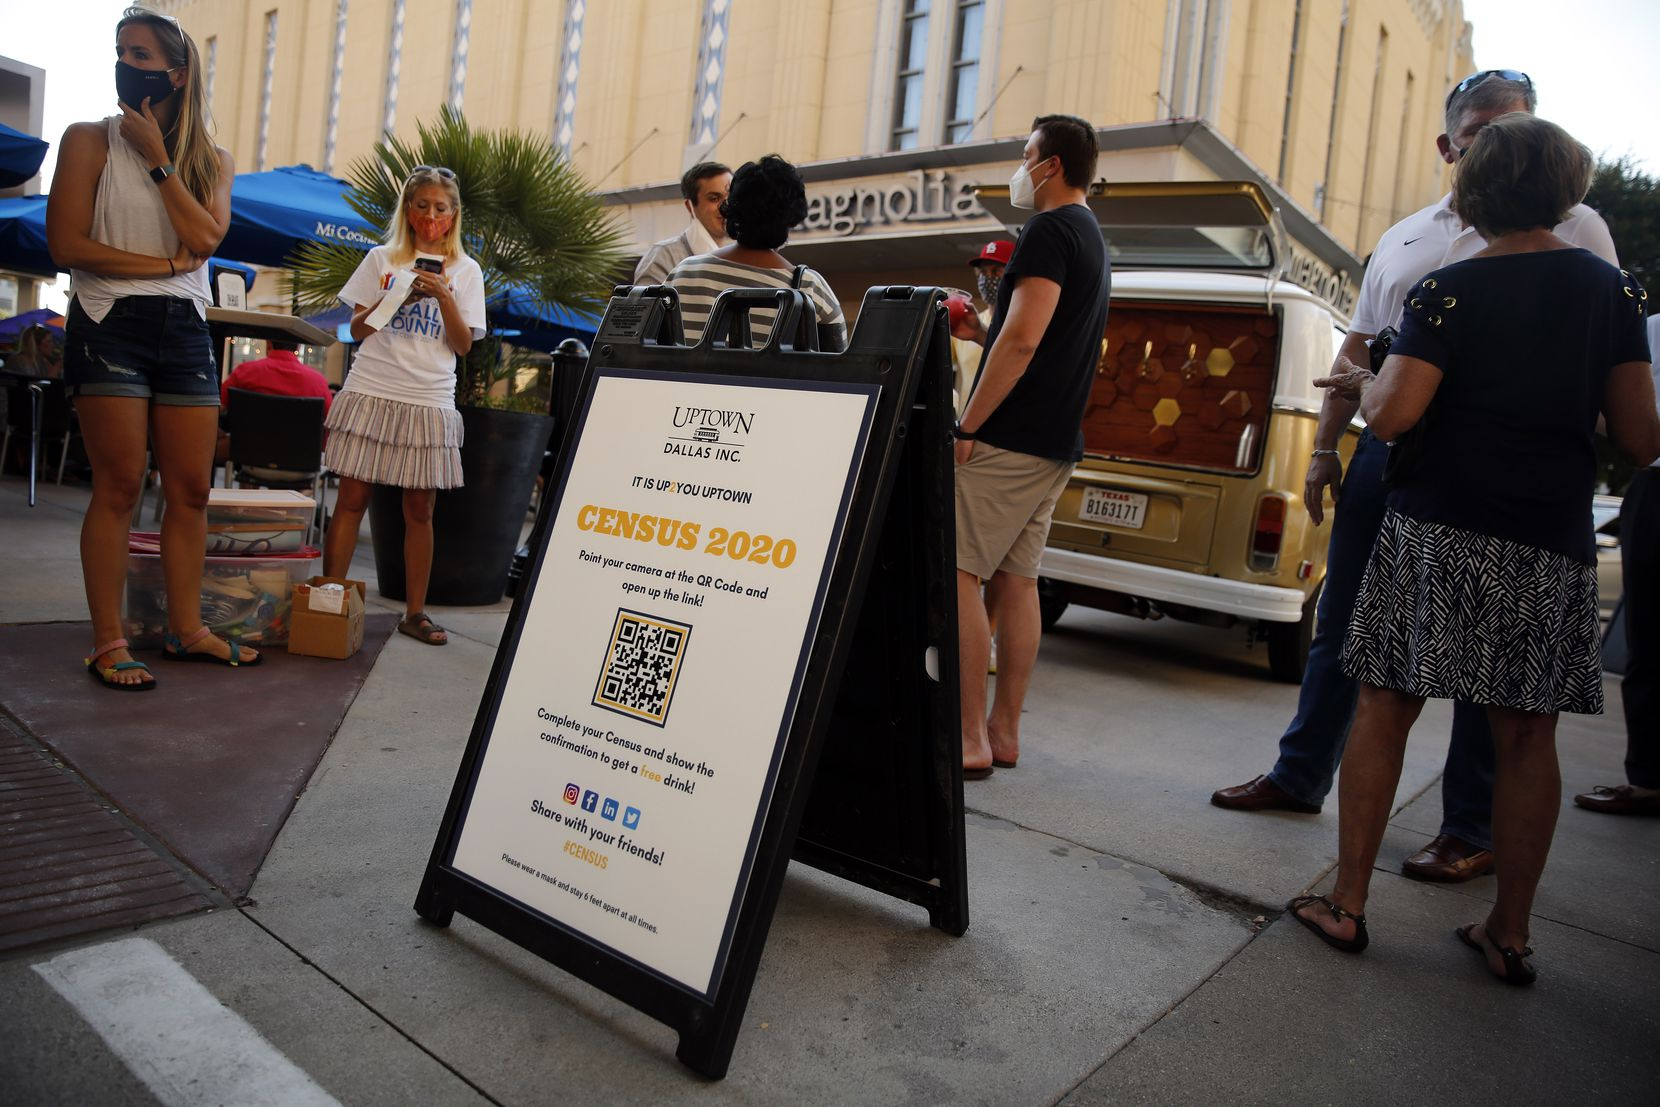 Volunteers with Uptown Dallas encourage people outside Mi Cocina at West Village shopping center to register for Census 2020 in Dallas, Thursday, August 20, 2020. Those who did were given free drinks by Bubble Bus Co., a mobile beverage van.